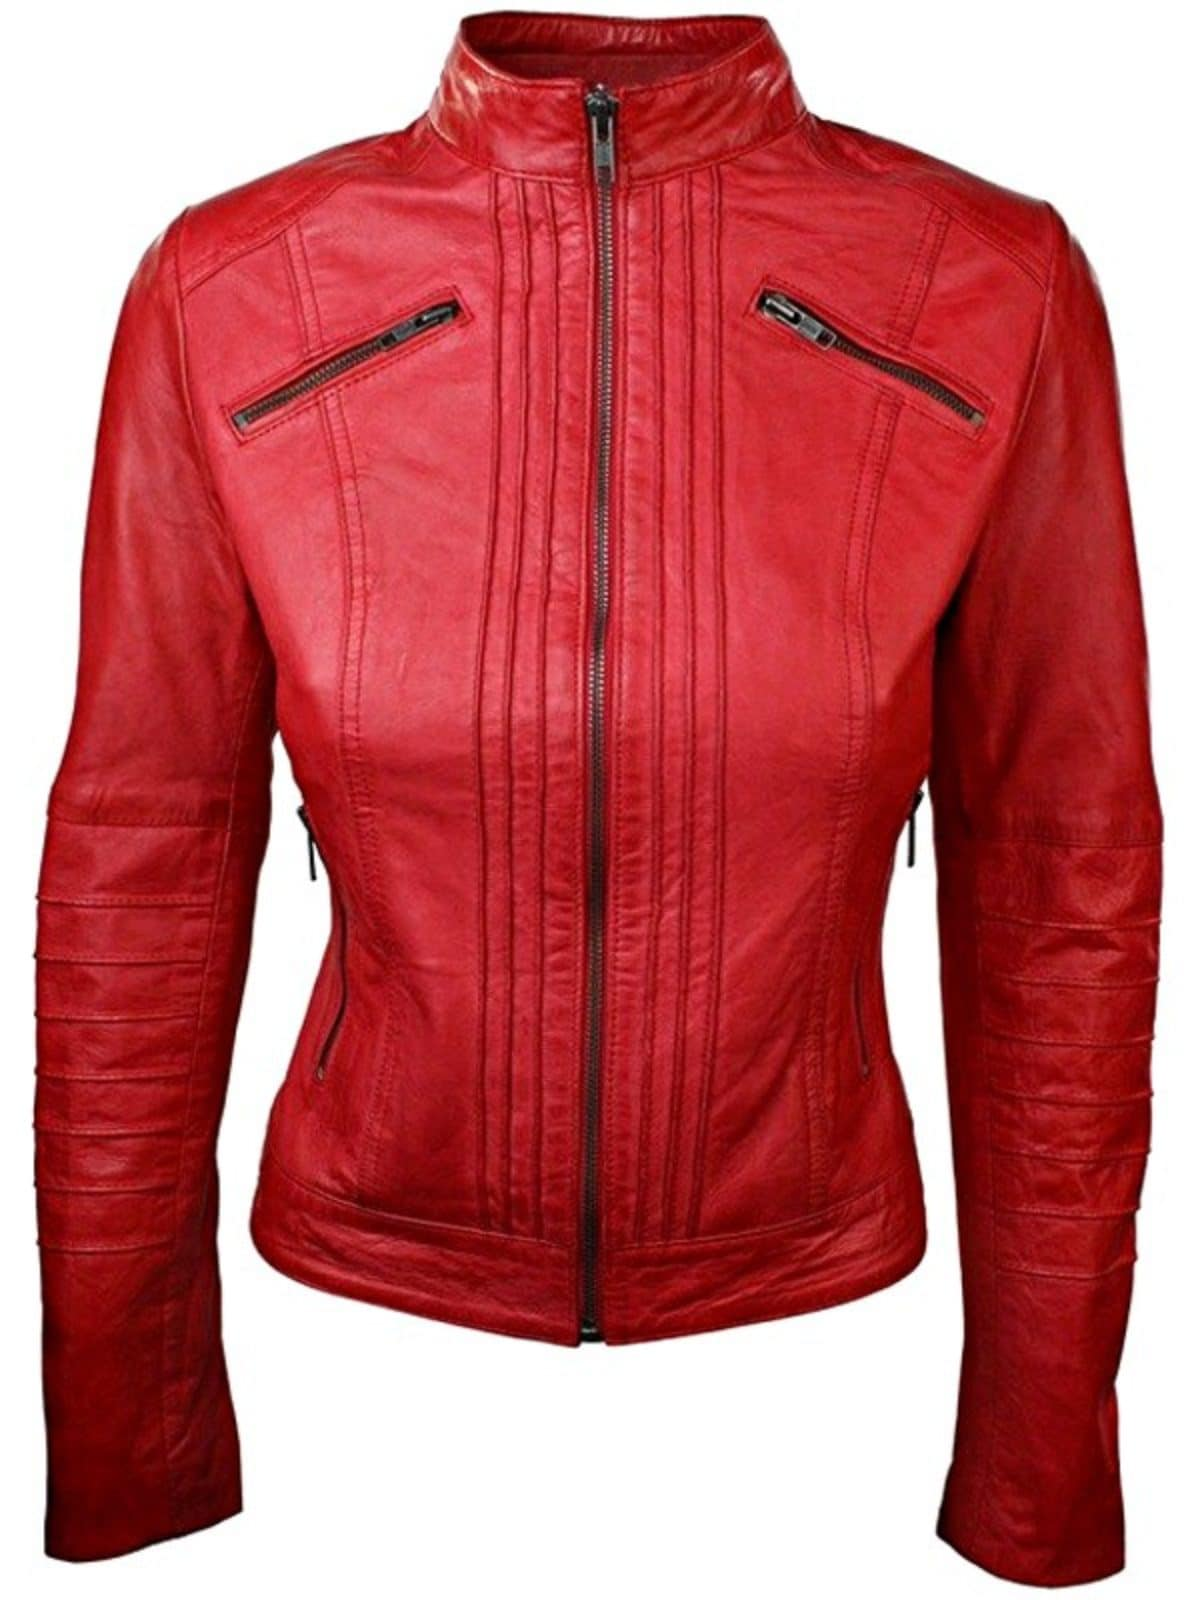 Womens Sheepskin Leather Biker Jacket Red Tan Stand Collar Front